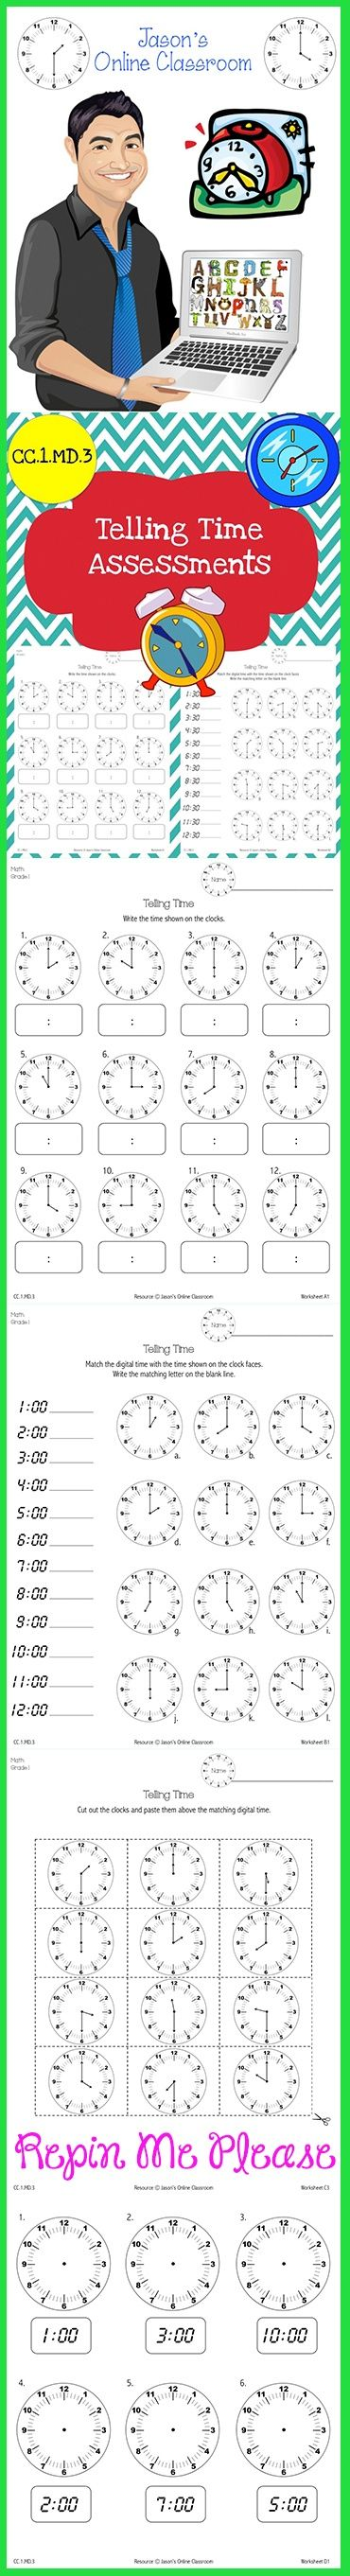 $4 - Common Core Aligned Time Assessments to help students learn how to  tell time.